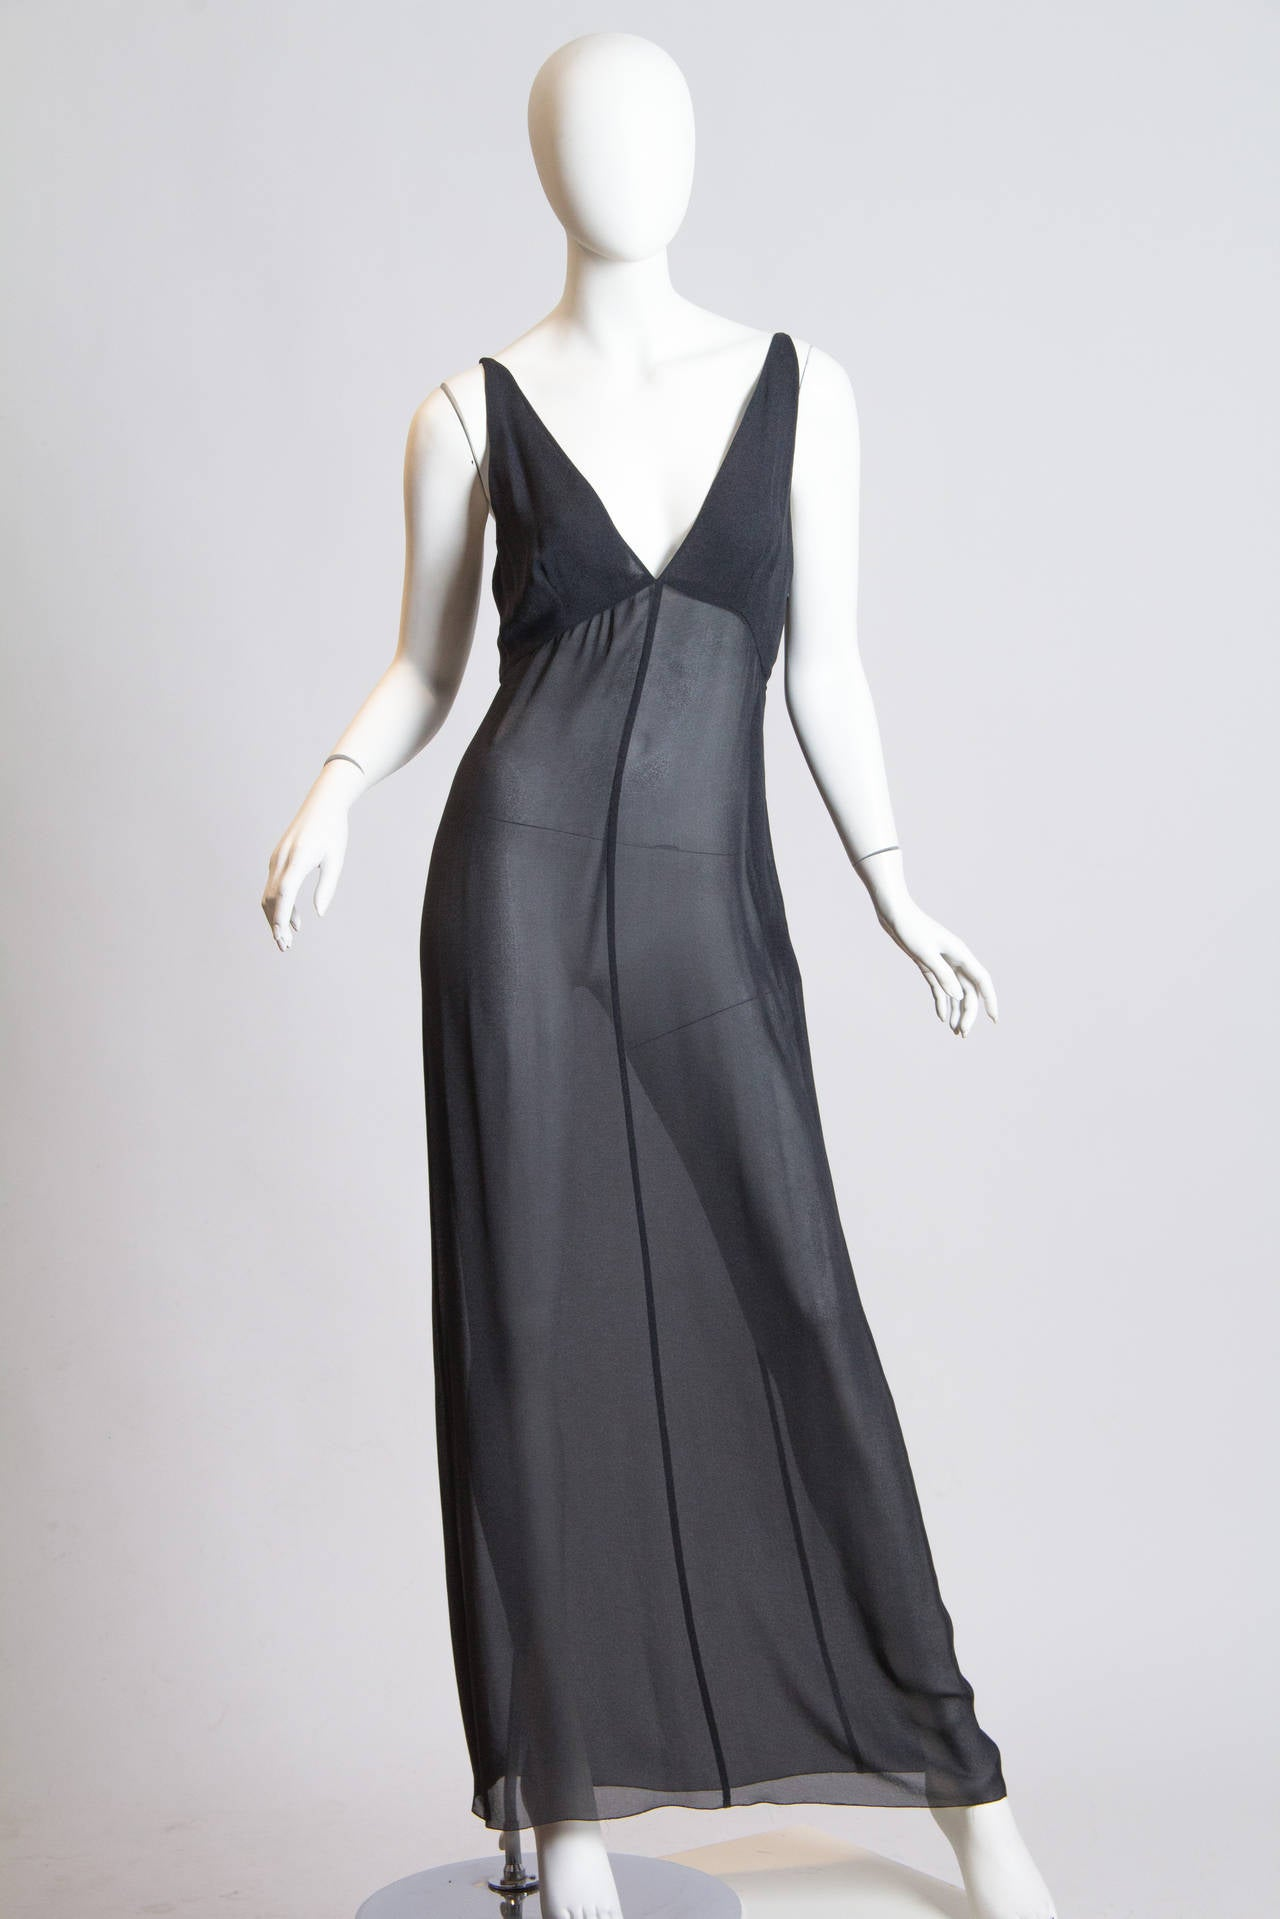 Slate Grey Crepe Dress from Chanel In Good Condition For Sale In New York, NY